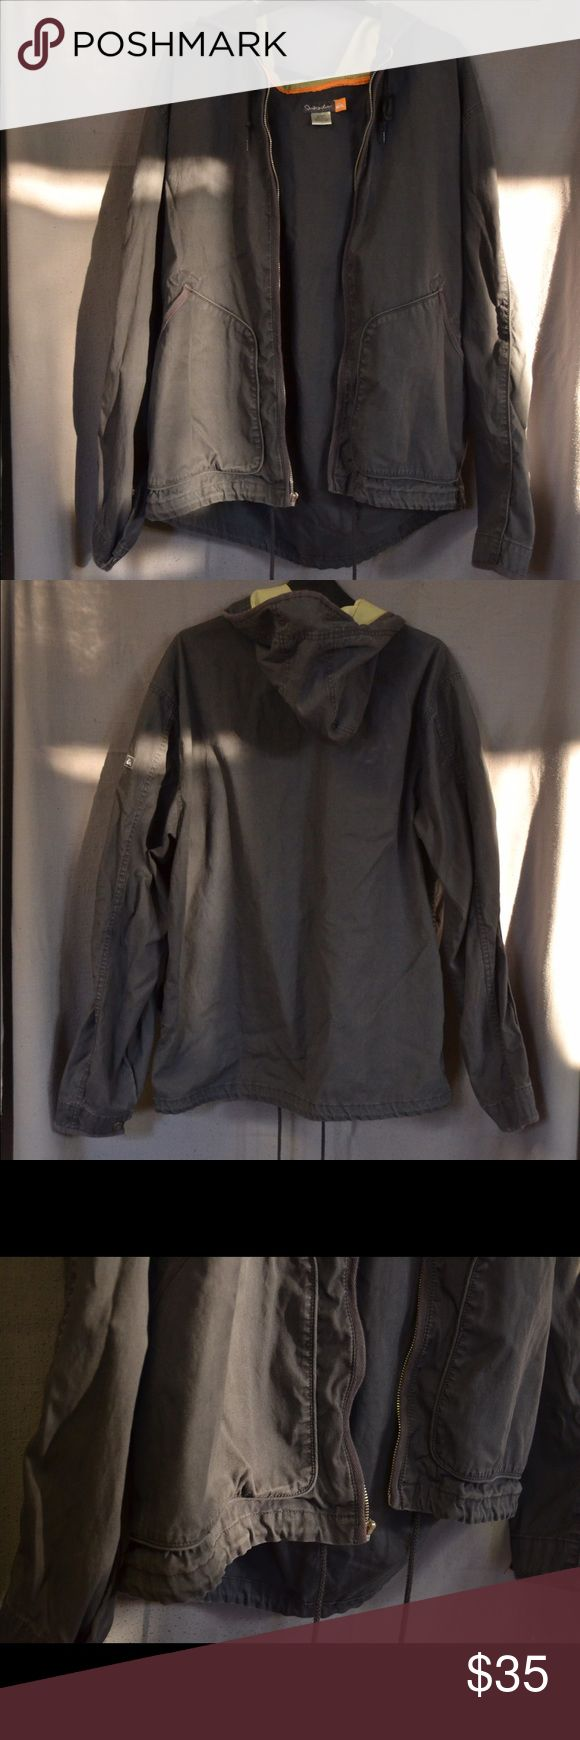 Charcoal Quicksilver Canvas Feel Coat, XL This is a perfect lightweight jacket for the coming of spring! Cute charcoal color, Quicksilver patch on left arm. The inside of the hood is tan. Women's L/XL Vintage Jackets & Coats Utility Jackets